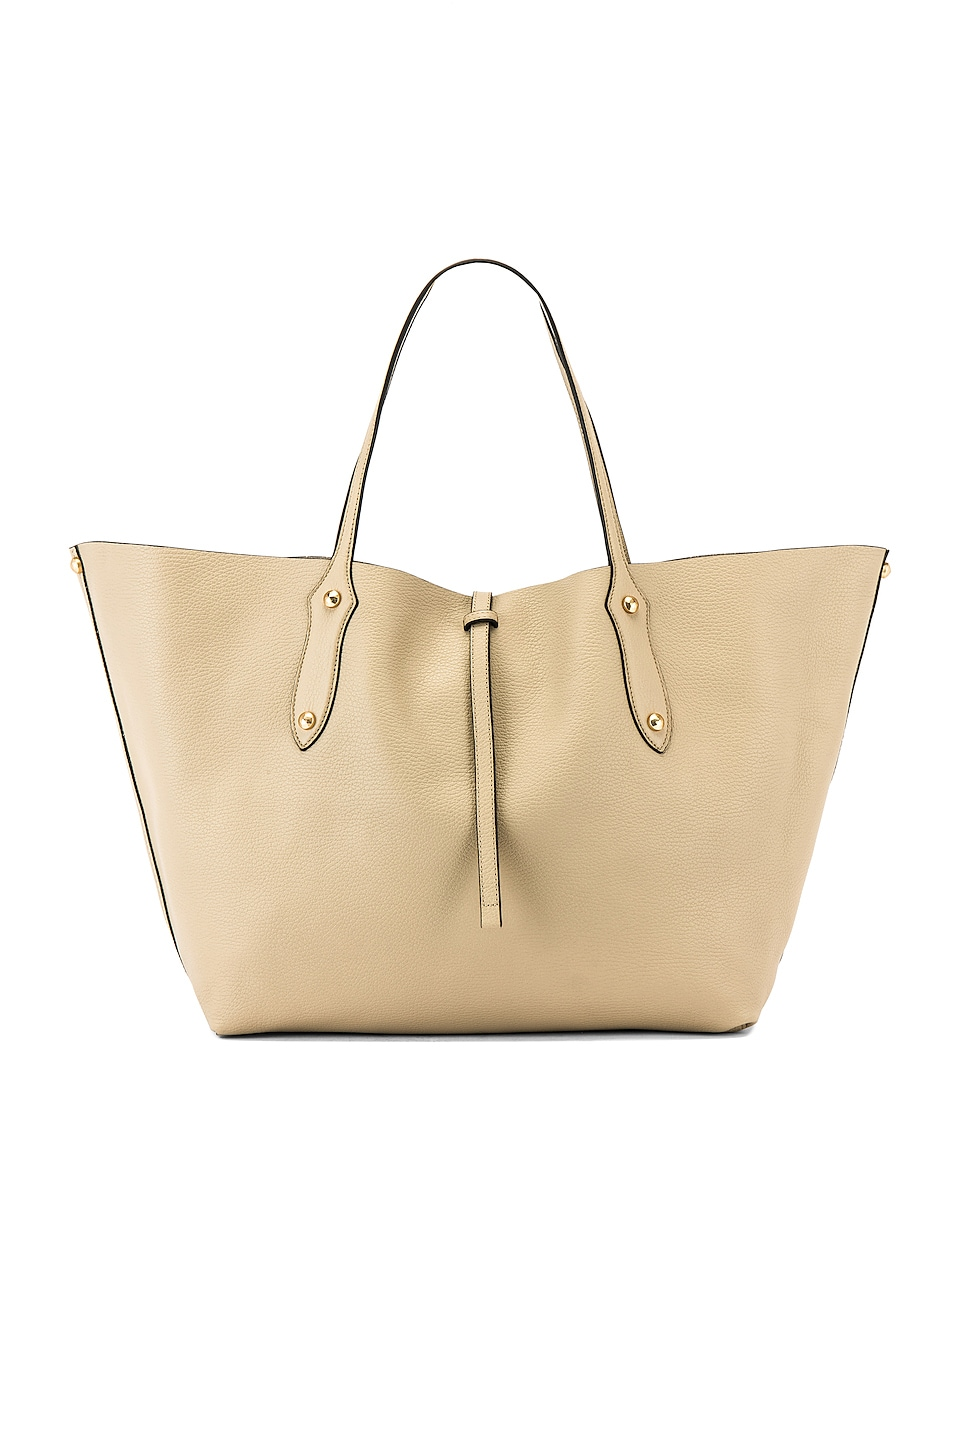 Annabel Ingall Large Isabella Tote in Pear